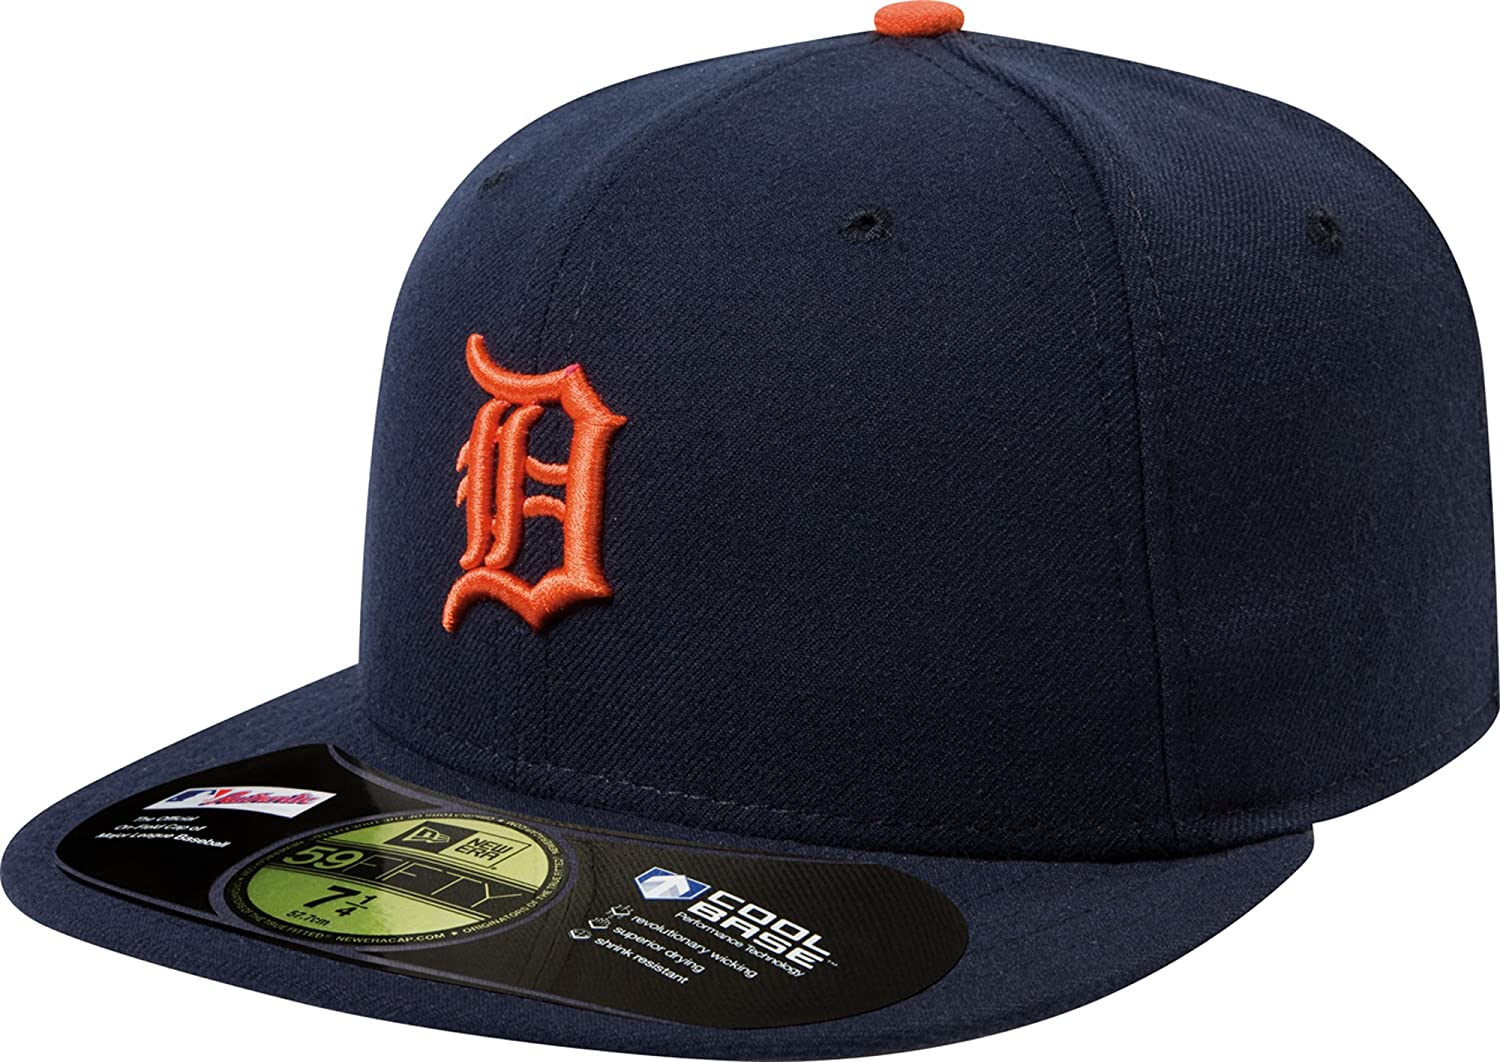 hot sale online 3791c 9d646 Detroit Tigers 59Fifty Authentic Fitted Performance Home MLB Baseball Cap   Amazon.ca  Sports   Outdoors